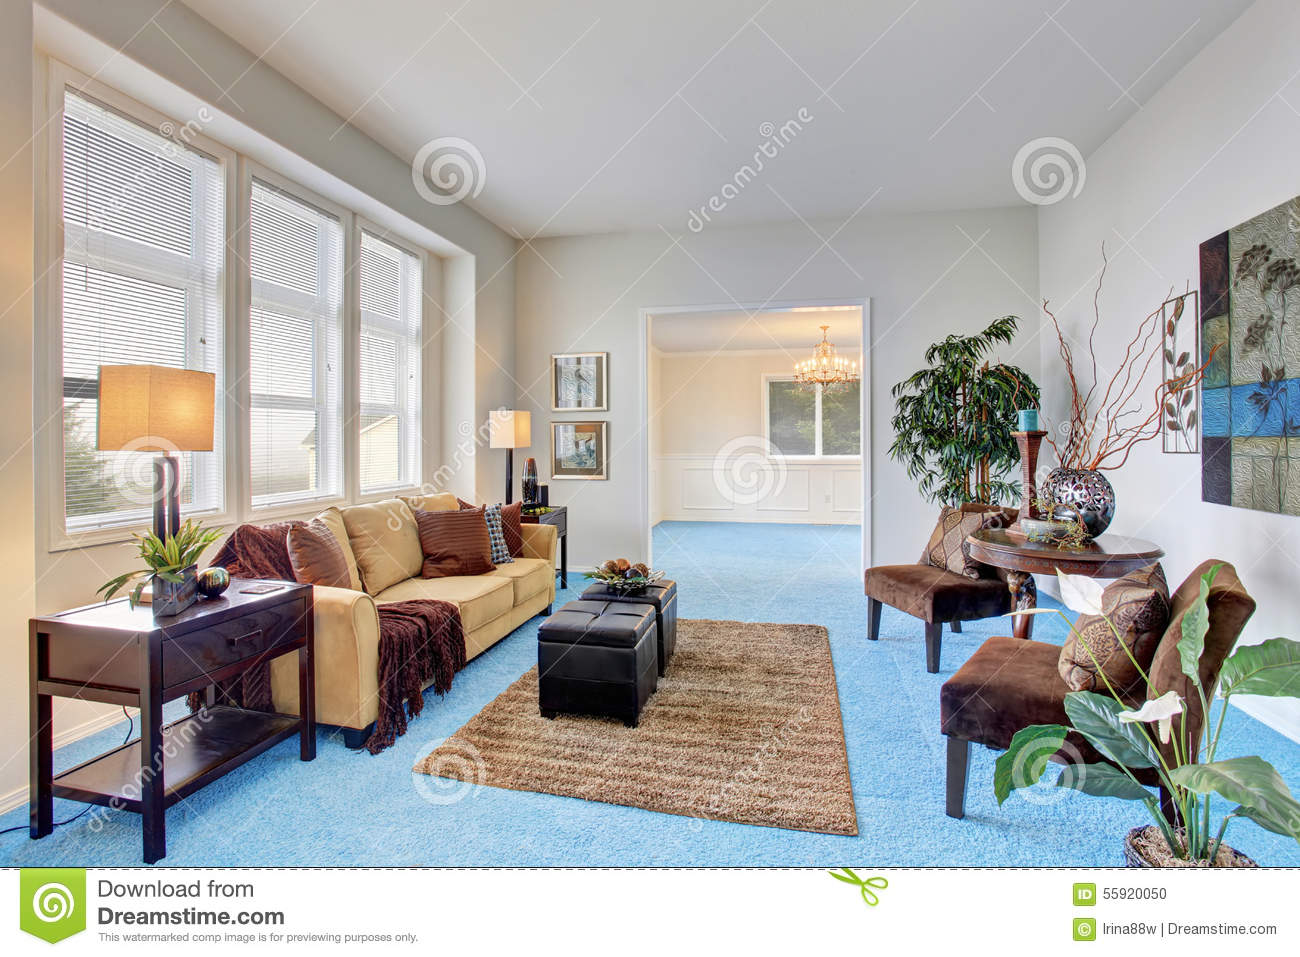 georgous living room with bright blue carpet stock photo image of rh dreamstime com blue carpet living room decorating ideas navy blue carpet bedroom ideas